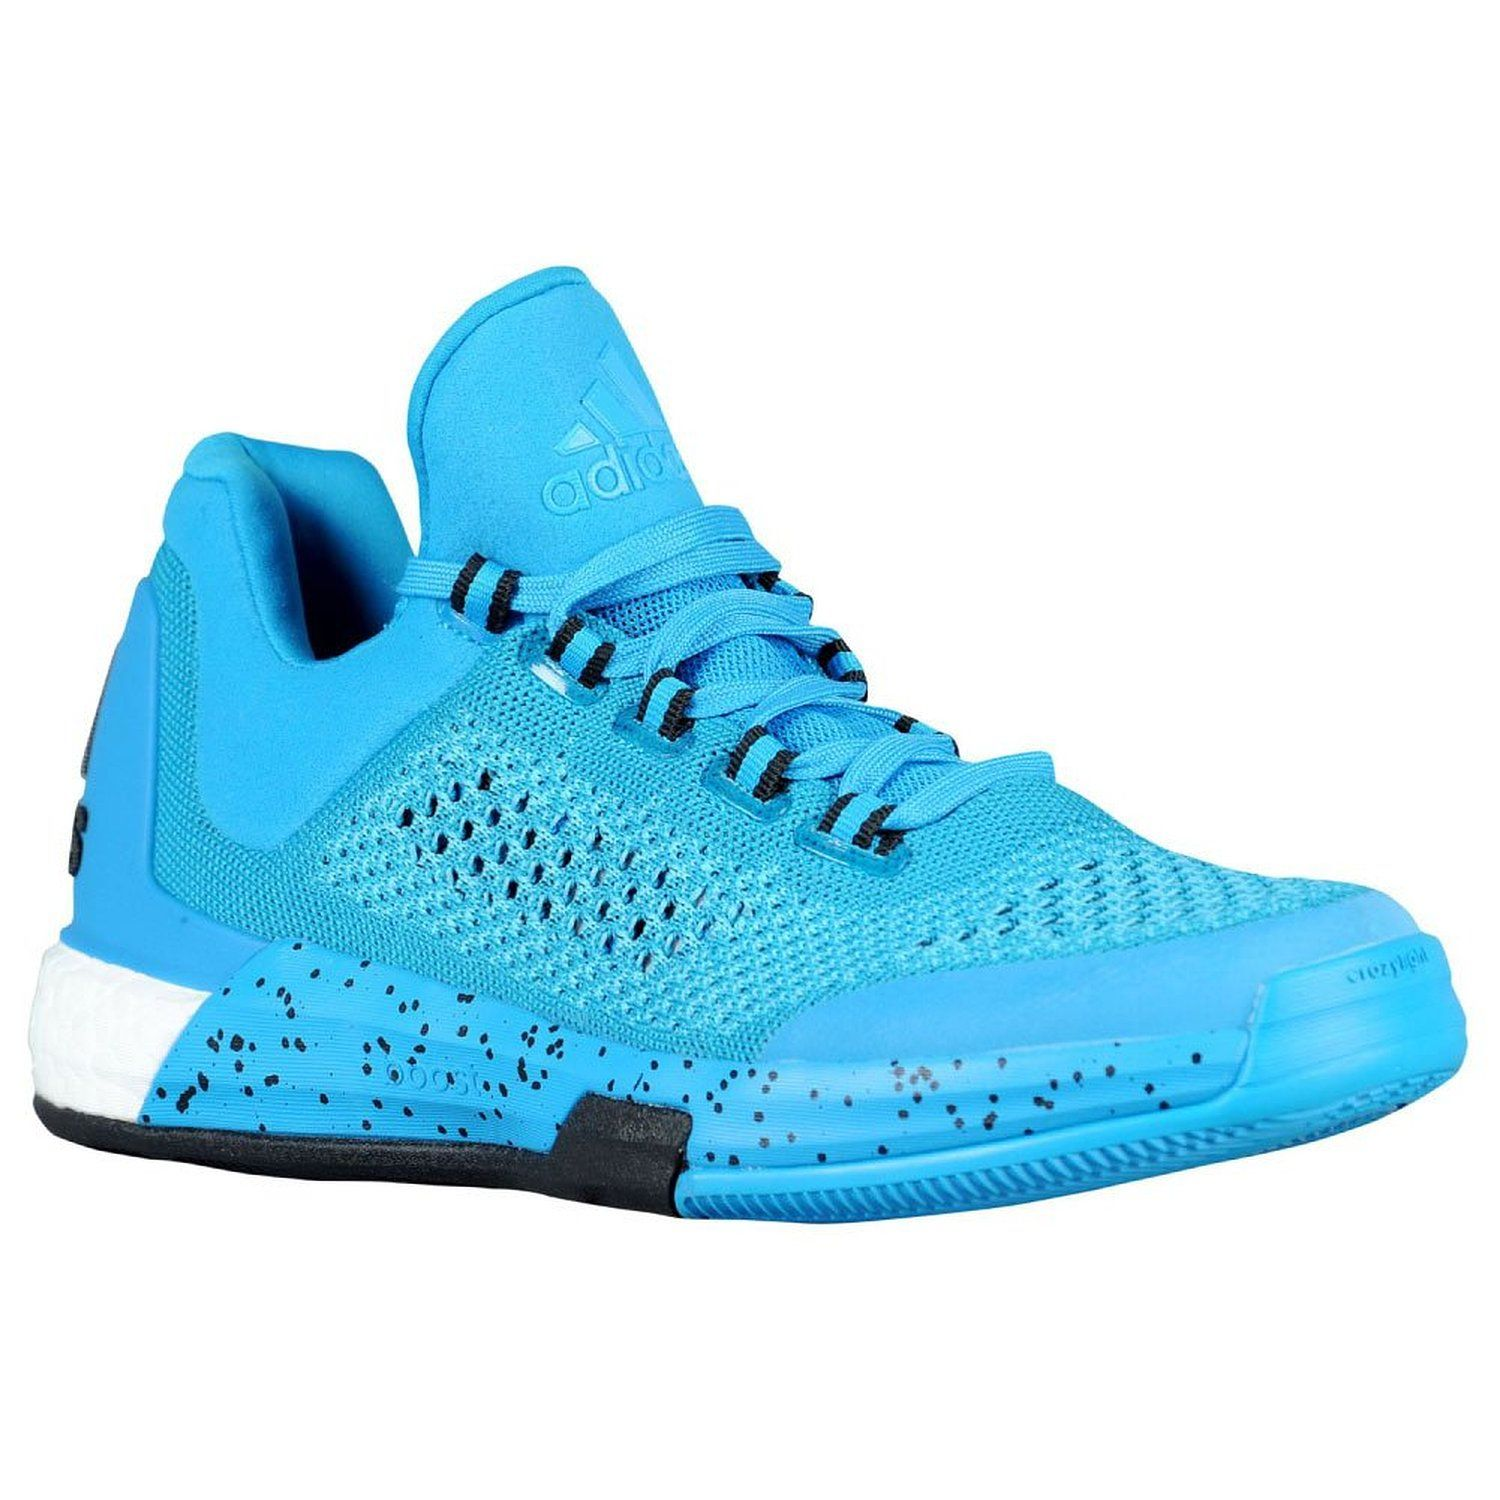 43acfea483f Best Basketball Shoes for Plantar Fasciitis  Crazylight Boost 2015 Primeknit